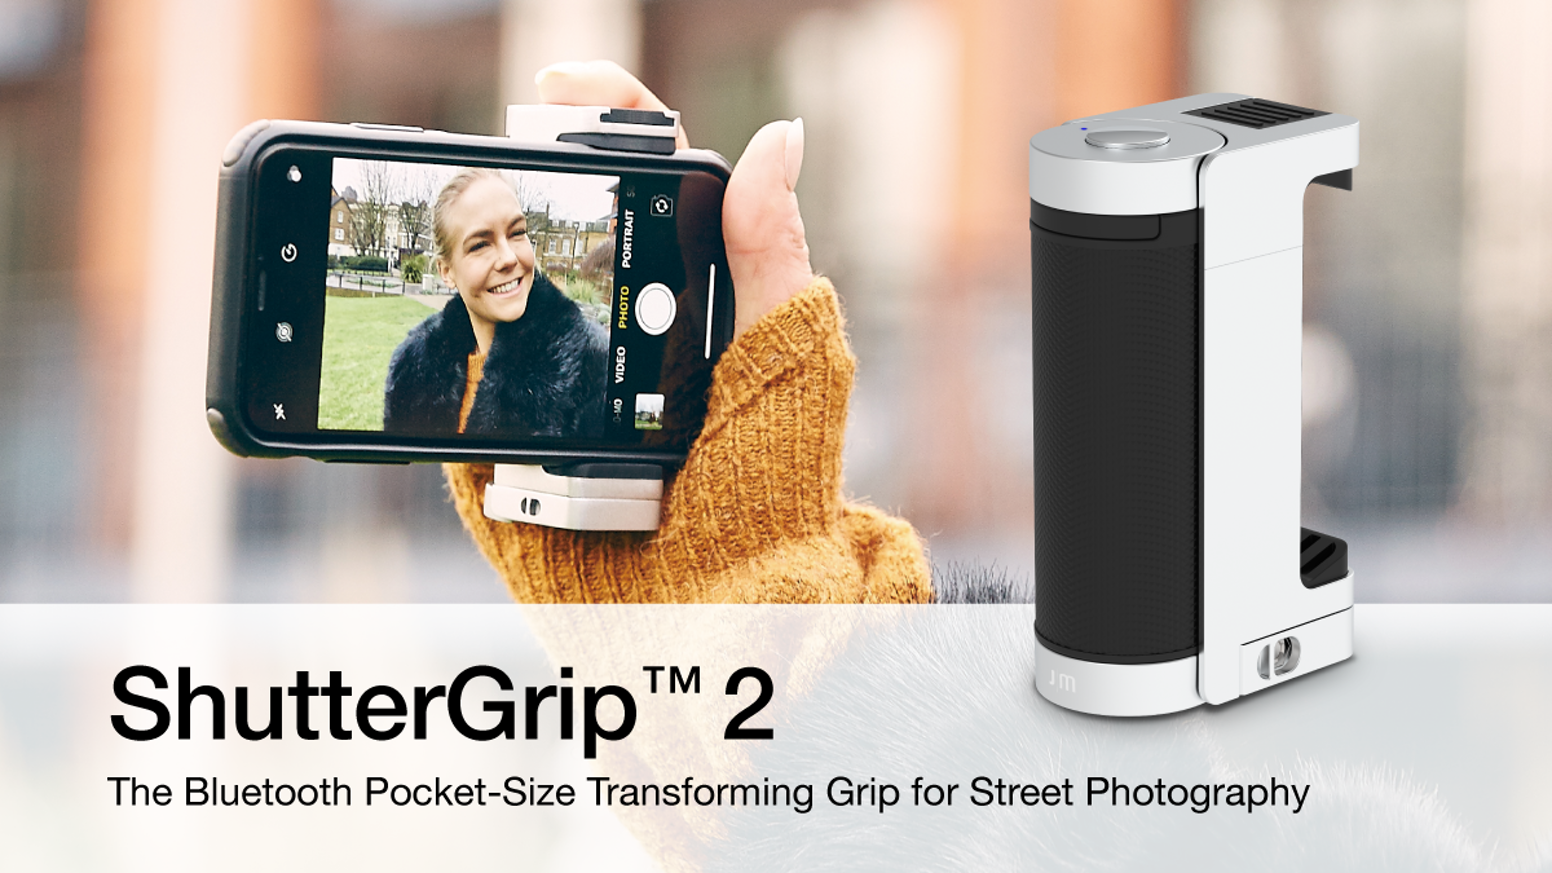 The Bluetooth Pocket-Size Transforming Grip for Street Photography